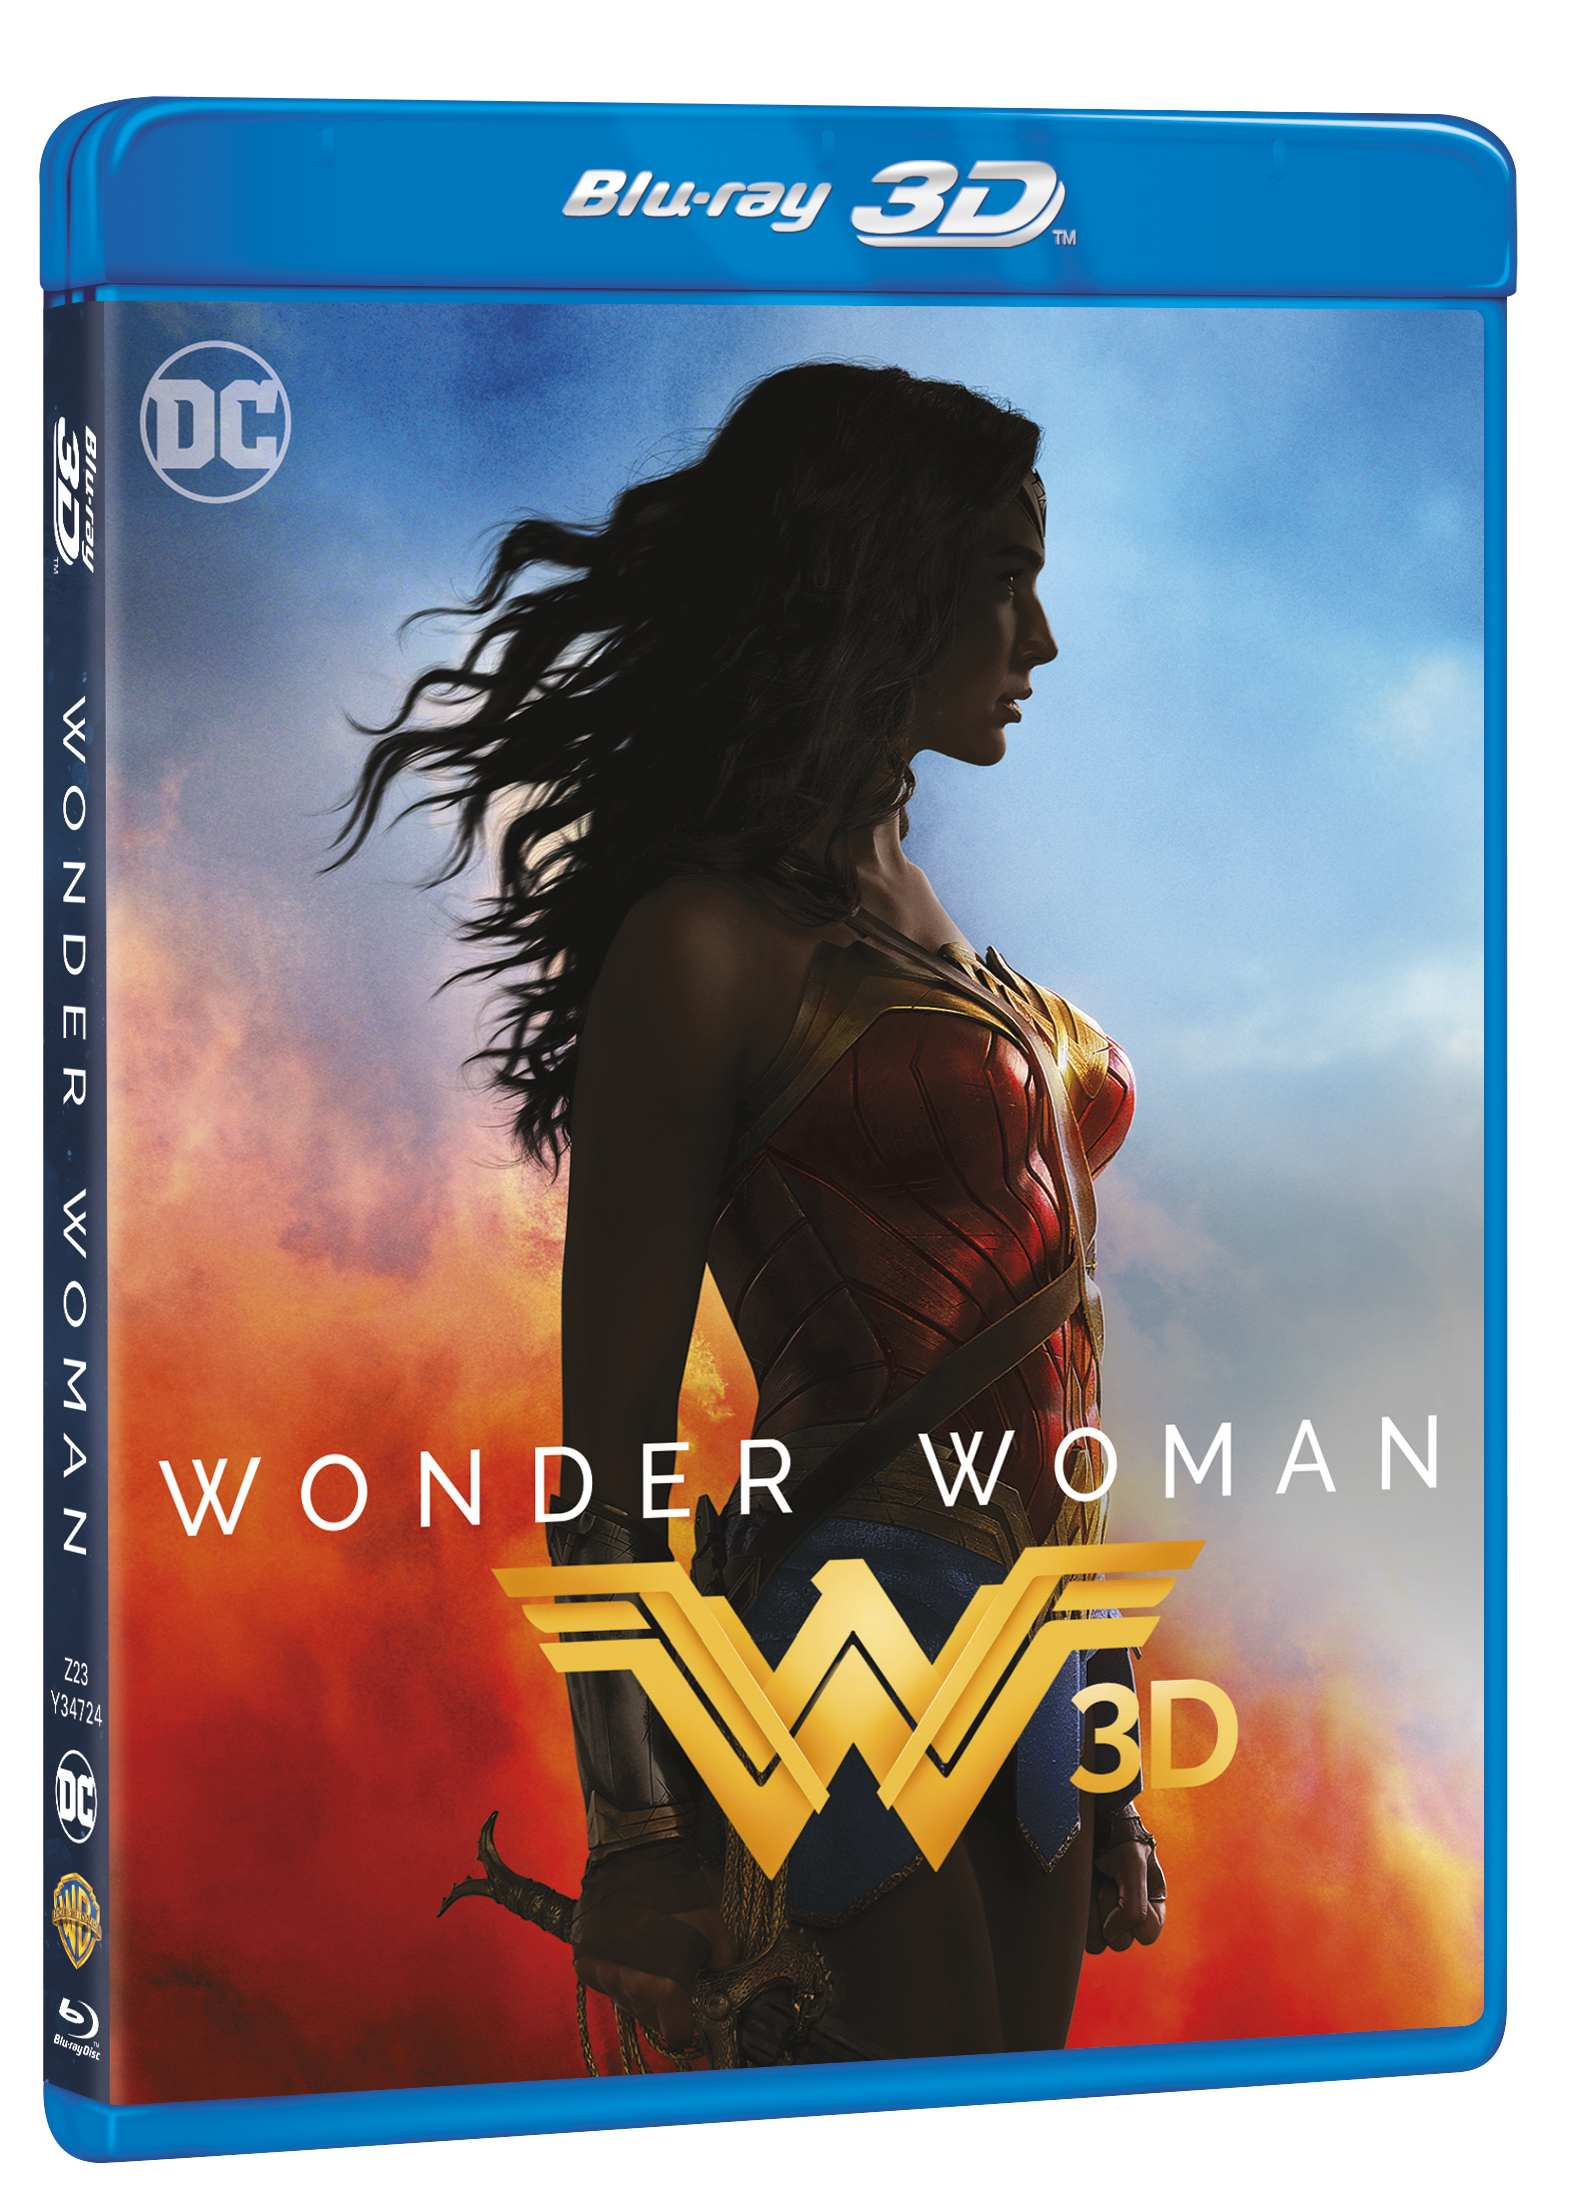 WONDER WOMAN - Blu-ray 3D + 2D